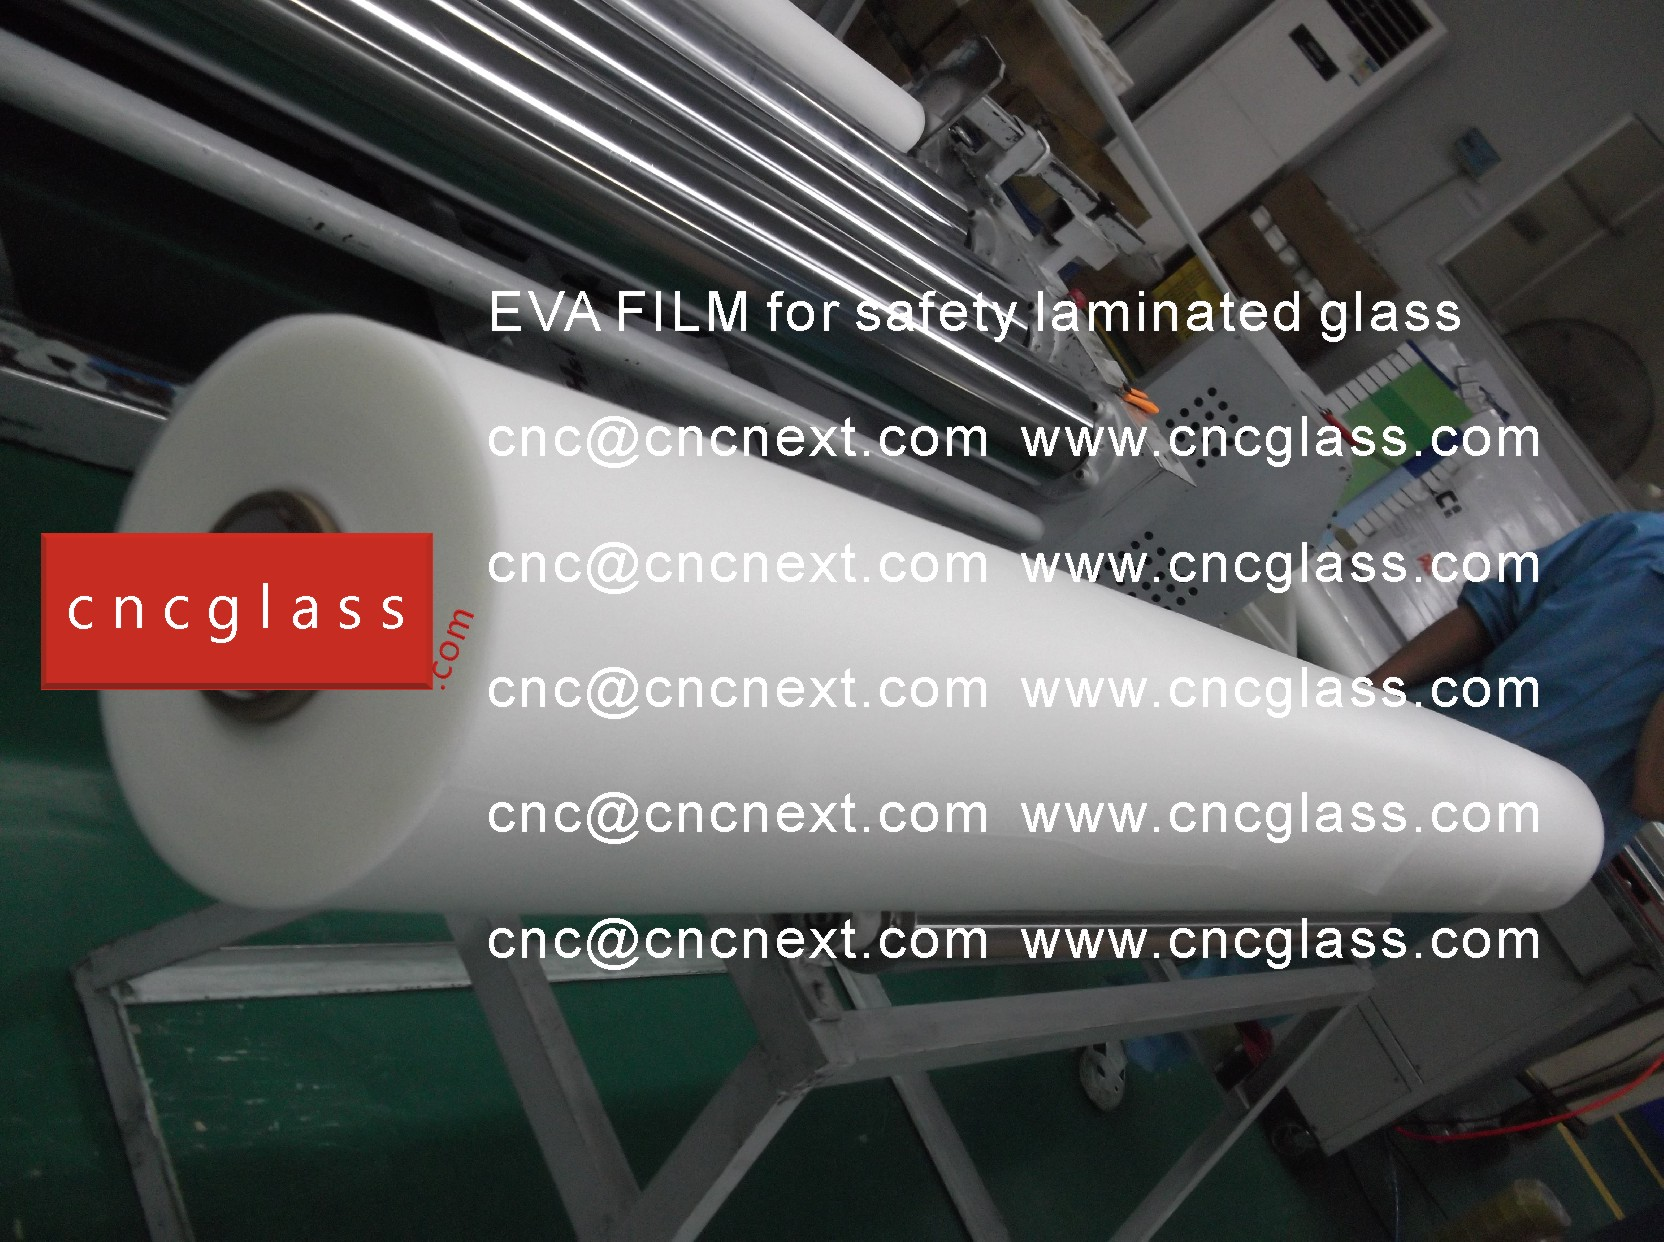 004 EVAFORCE EVA FILM FOR SAFETY LAMINATED GLASS